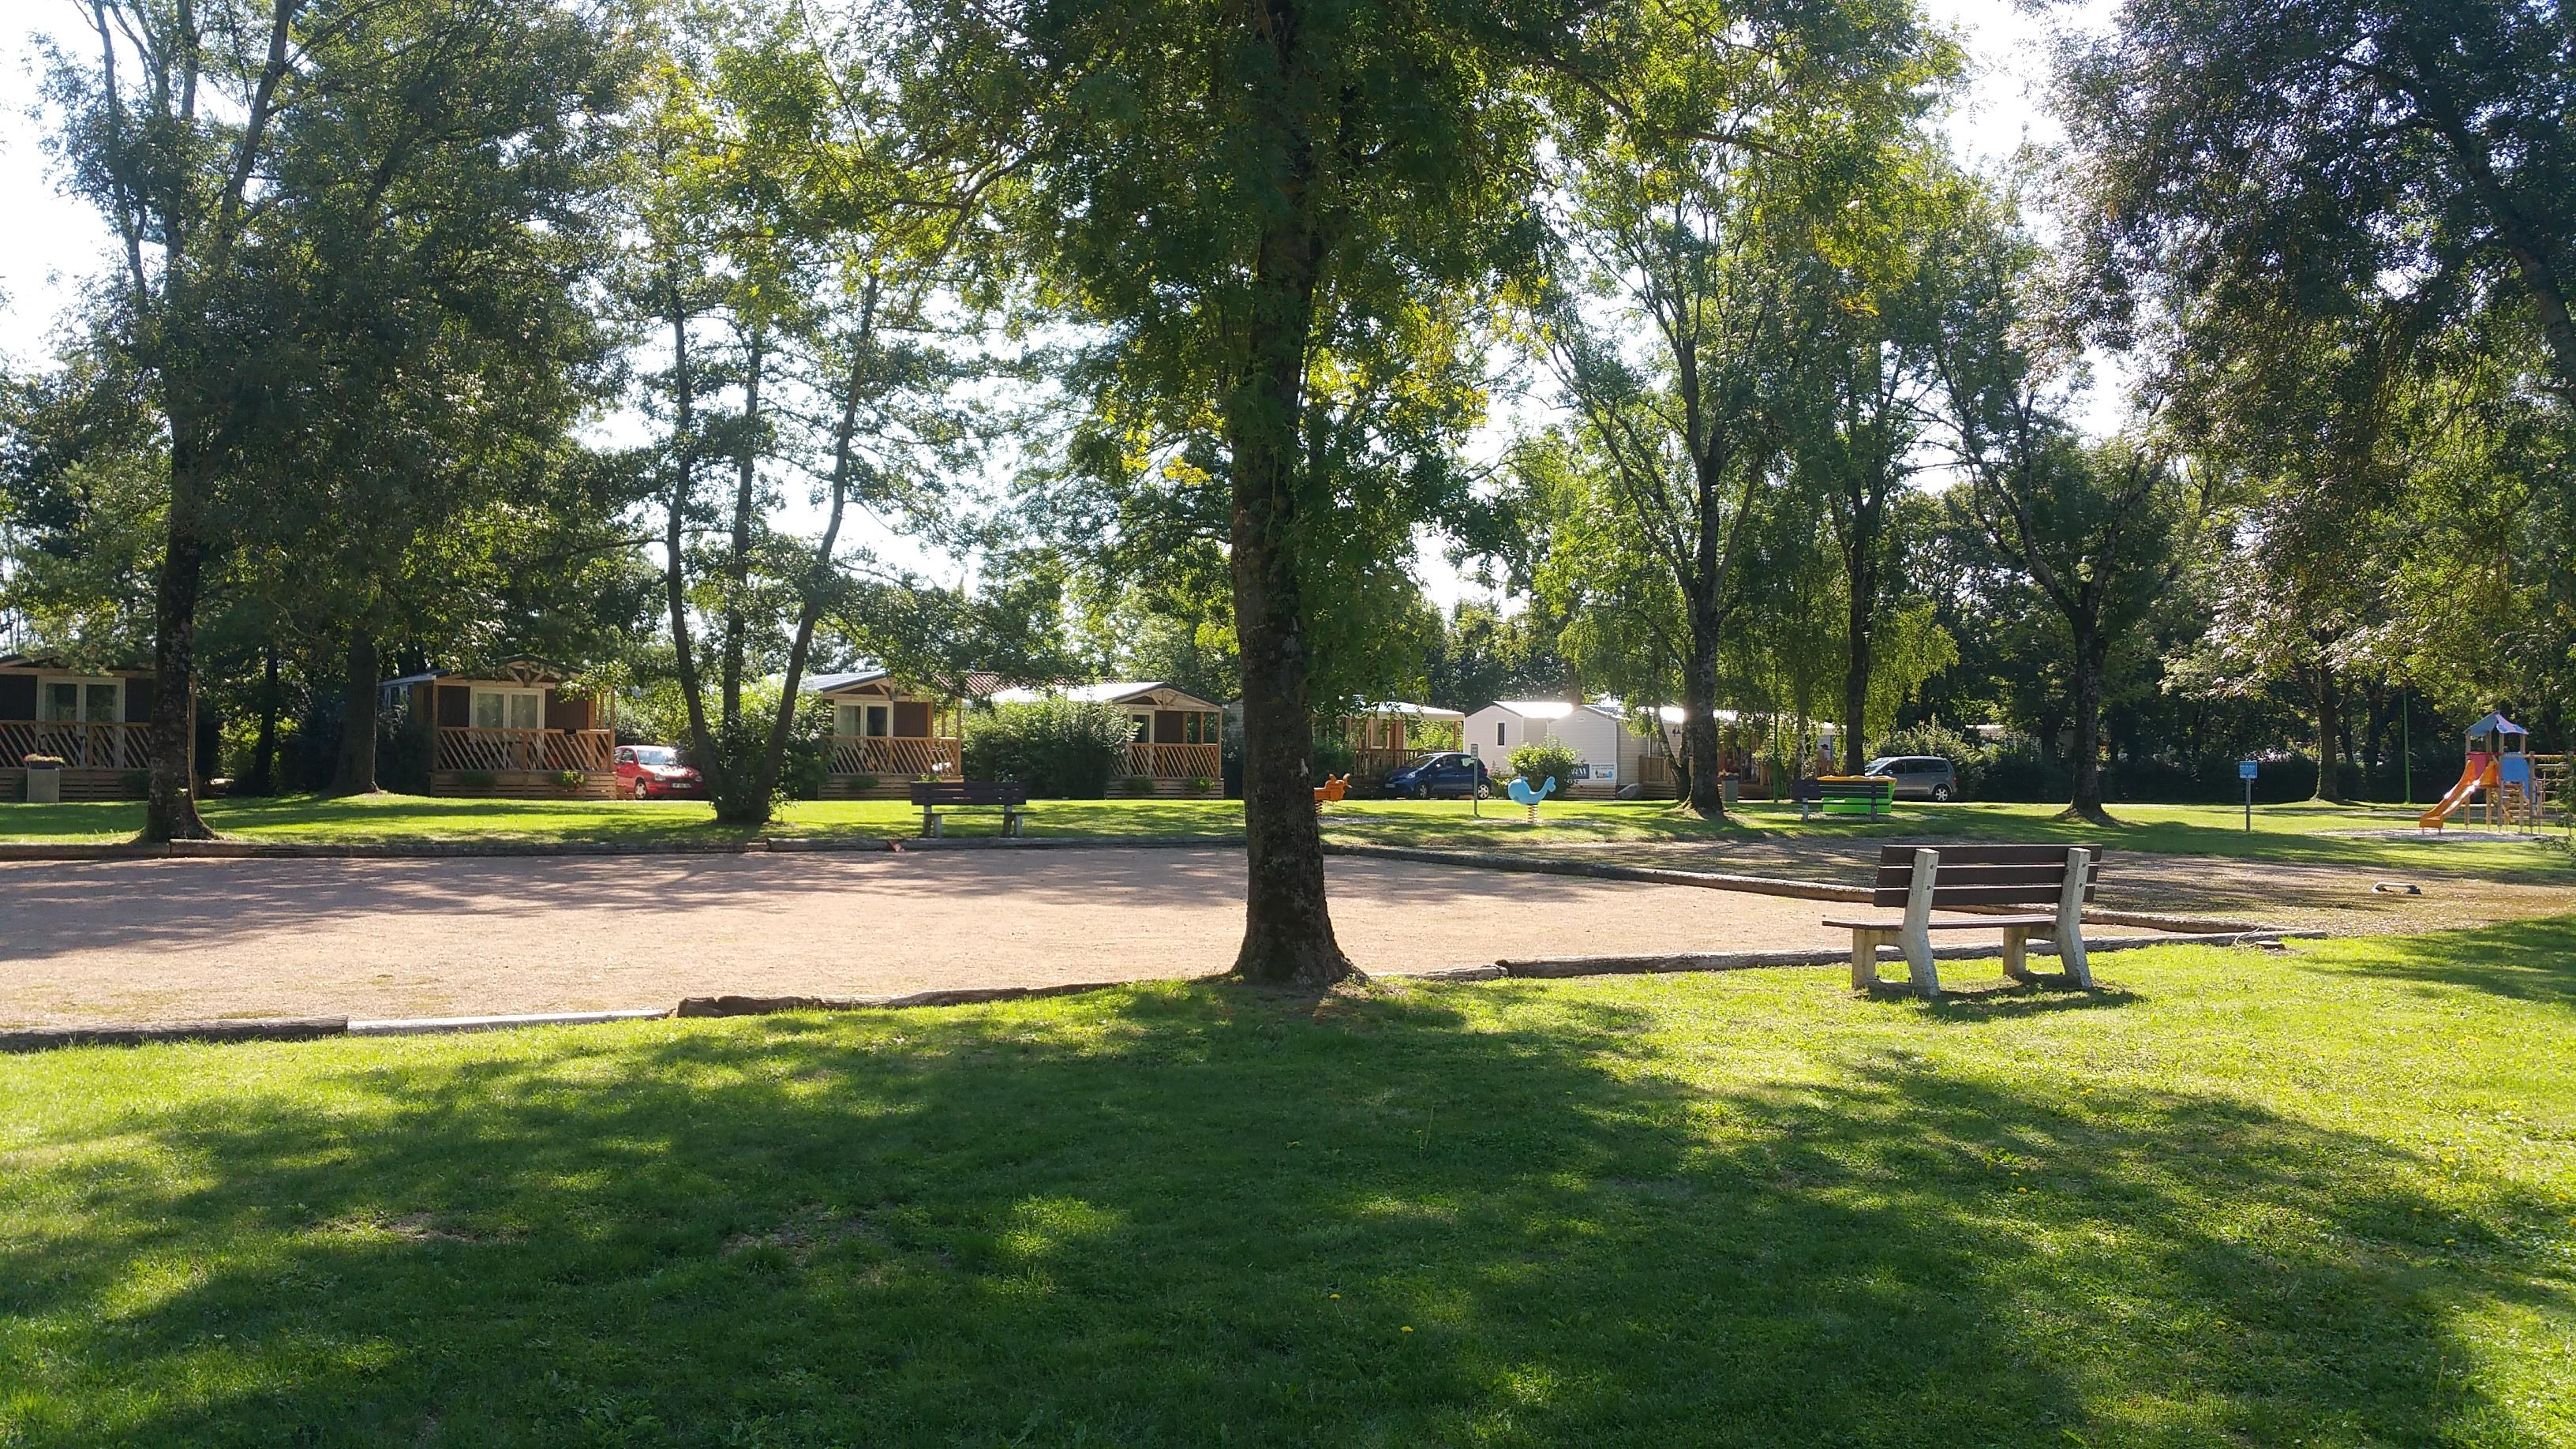 Huuraccommodatie - Cahita - Camping Le Paradis des Dombes